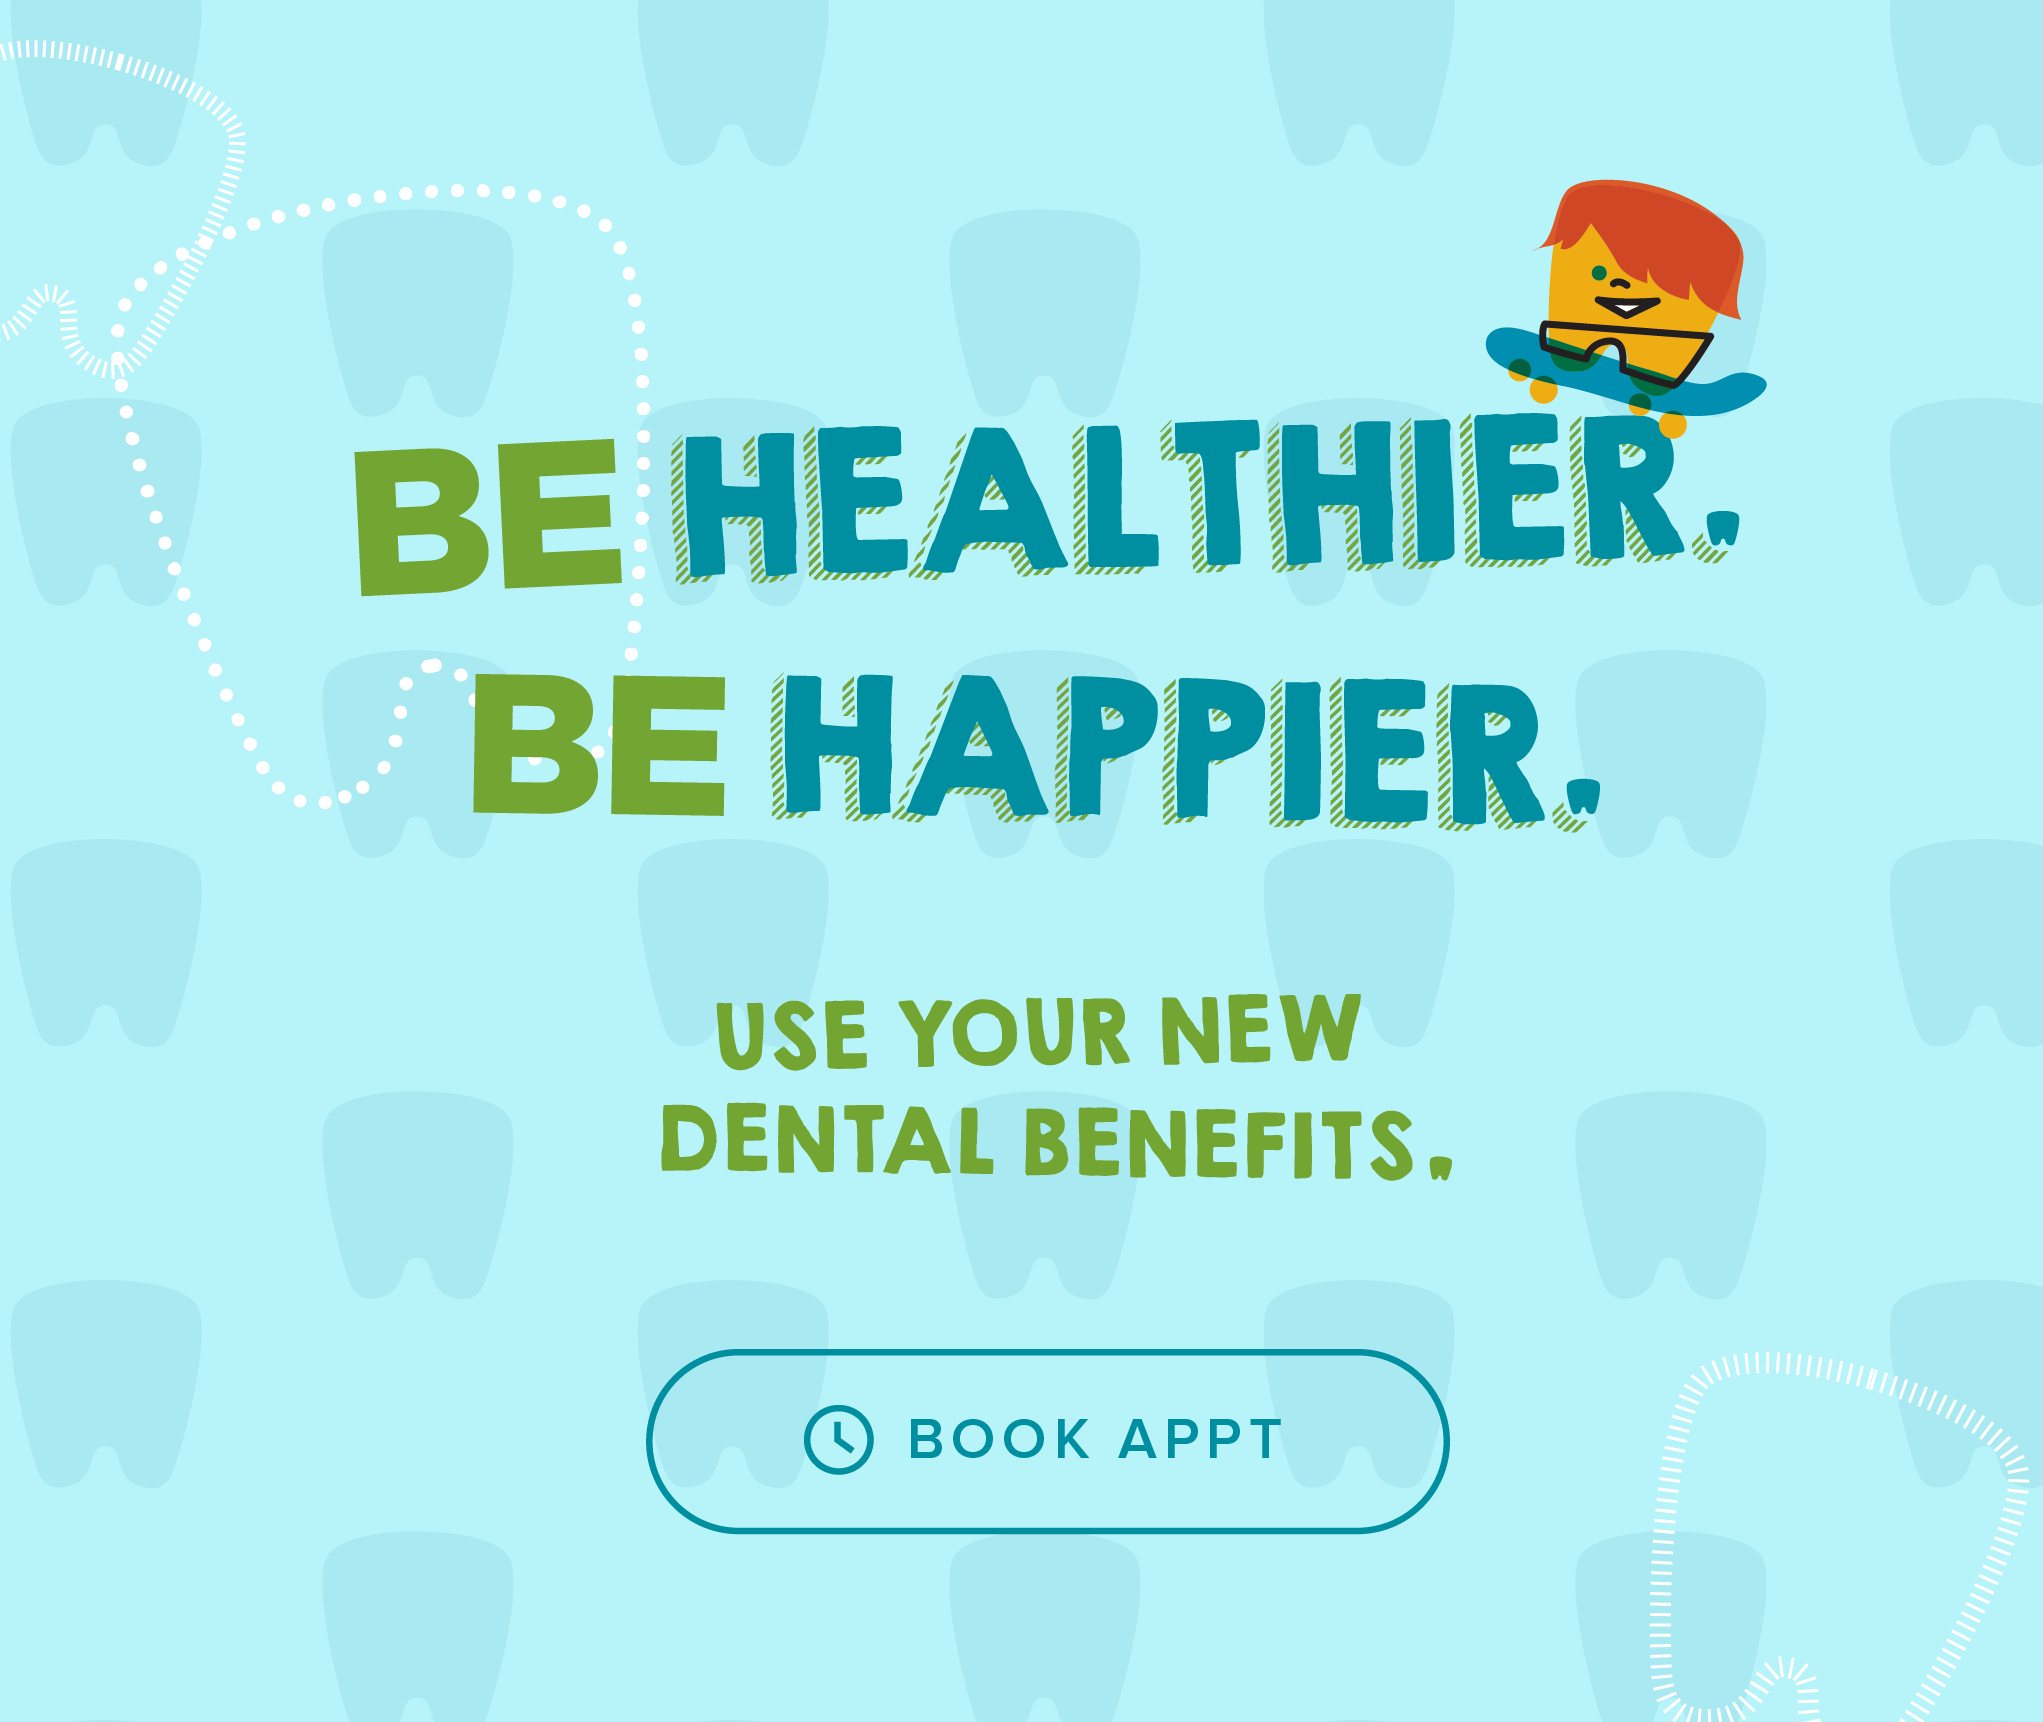 Be Healthier. Be Happier. Use your new dental benefits. - Menifee Kids' Dentistry